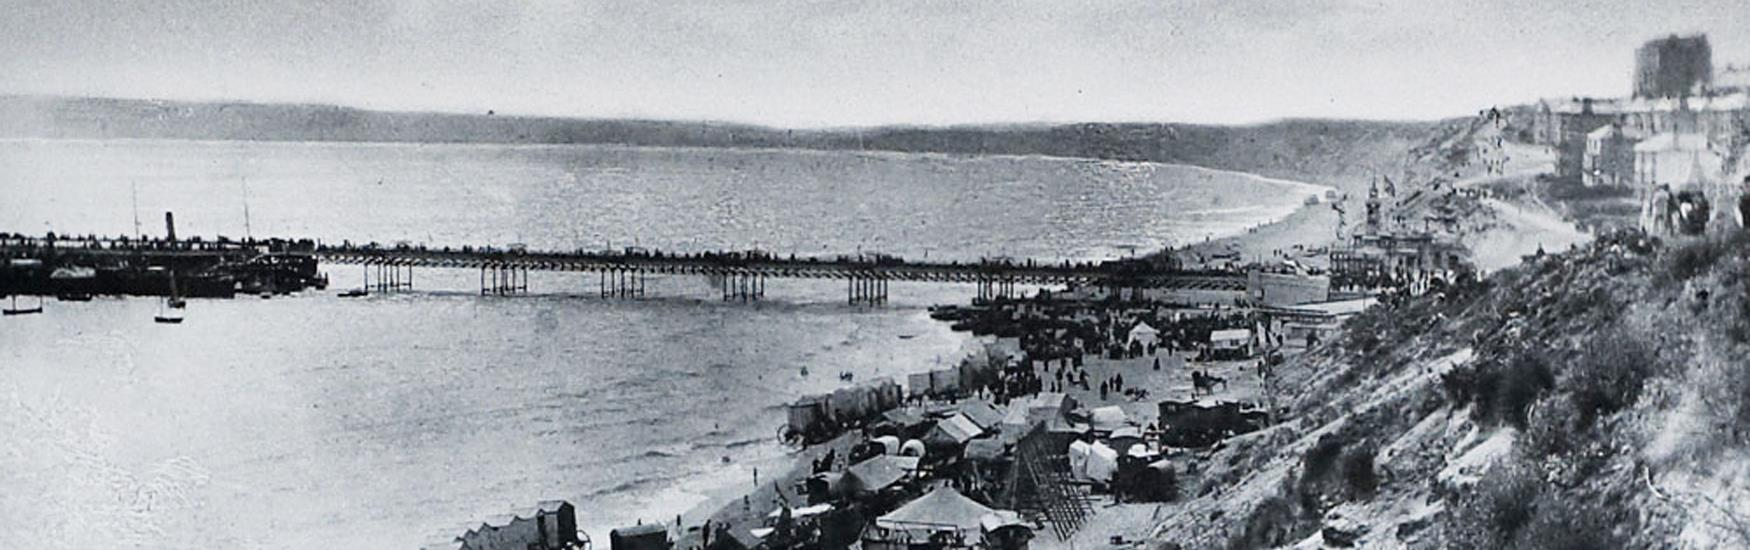 Bournemouth East Beach year 1890. Amusement Fair, bathing huts and horses on the beach